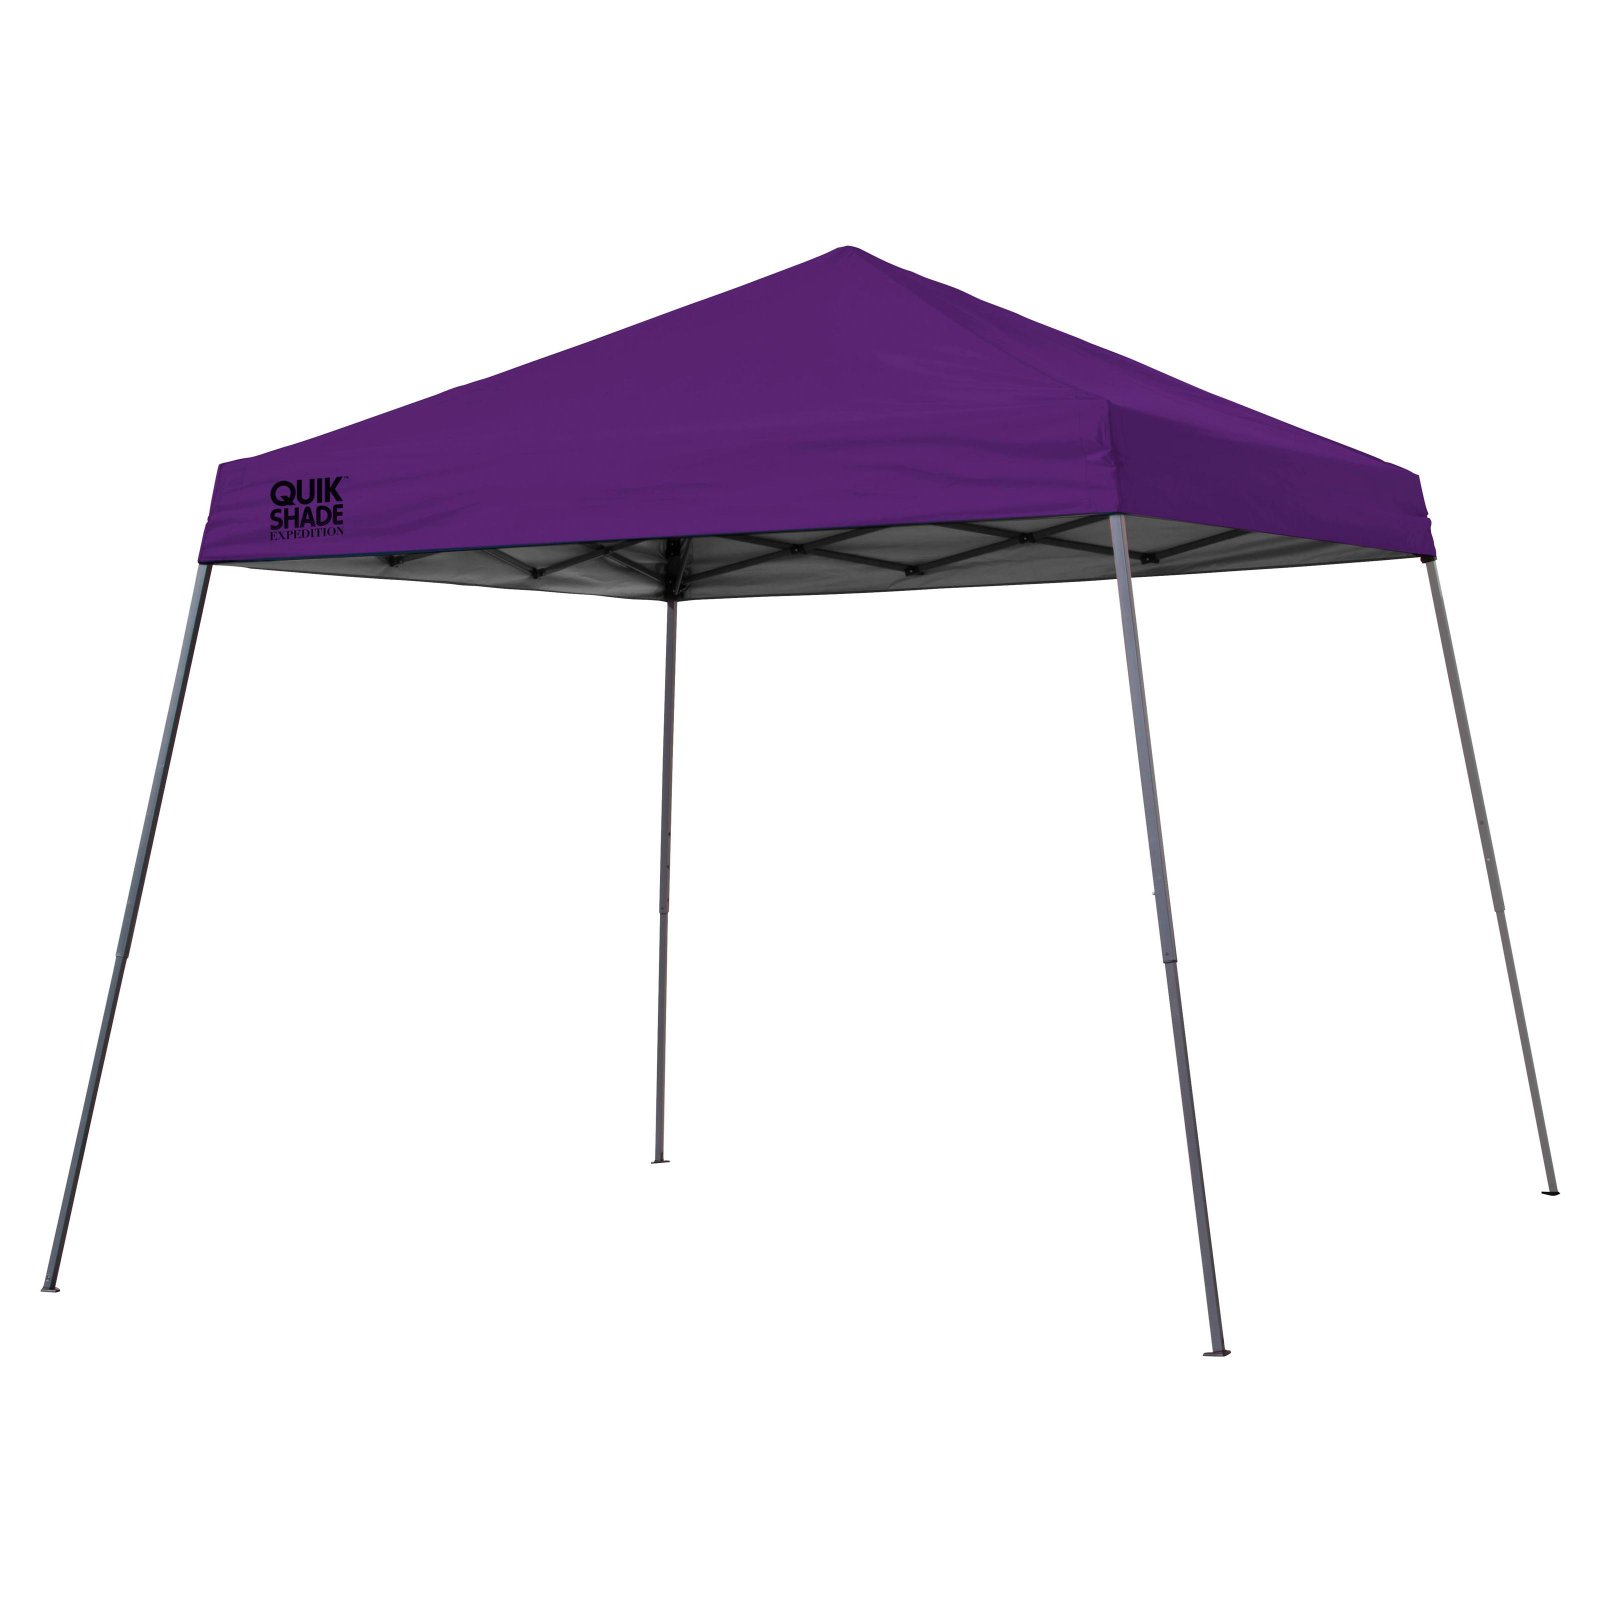 Quik Shade Expedition 10'x10' Slant Leg Instant Canopy (64 sq. ft. coverage)